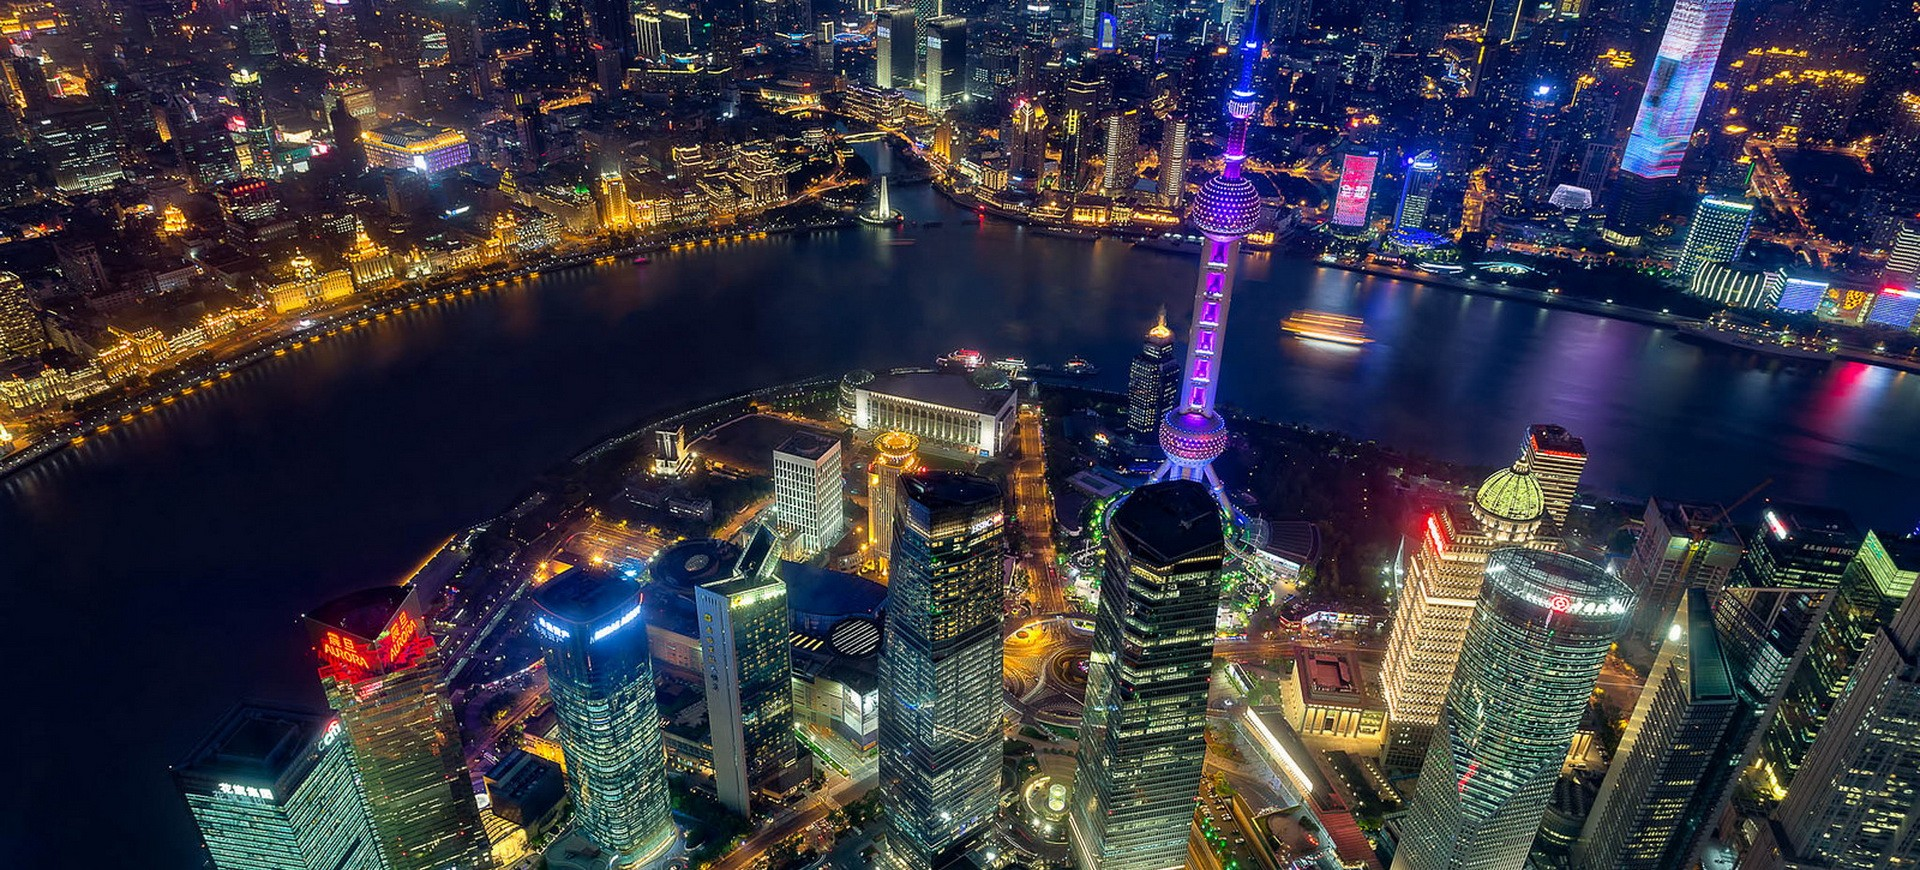 Chine Shanghai Skyline by night